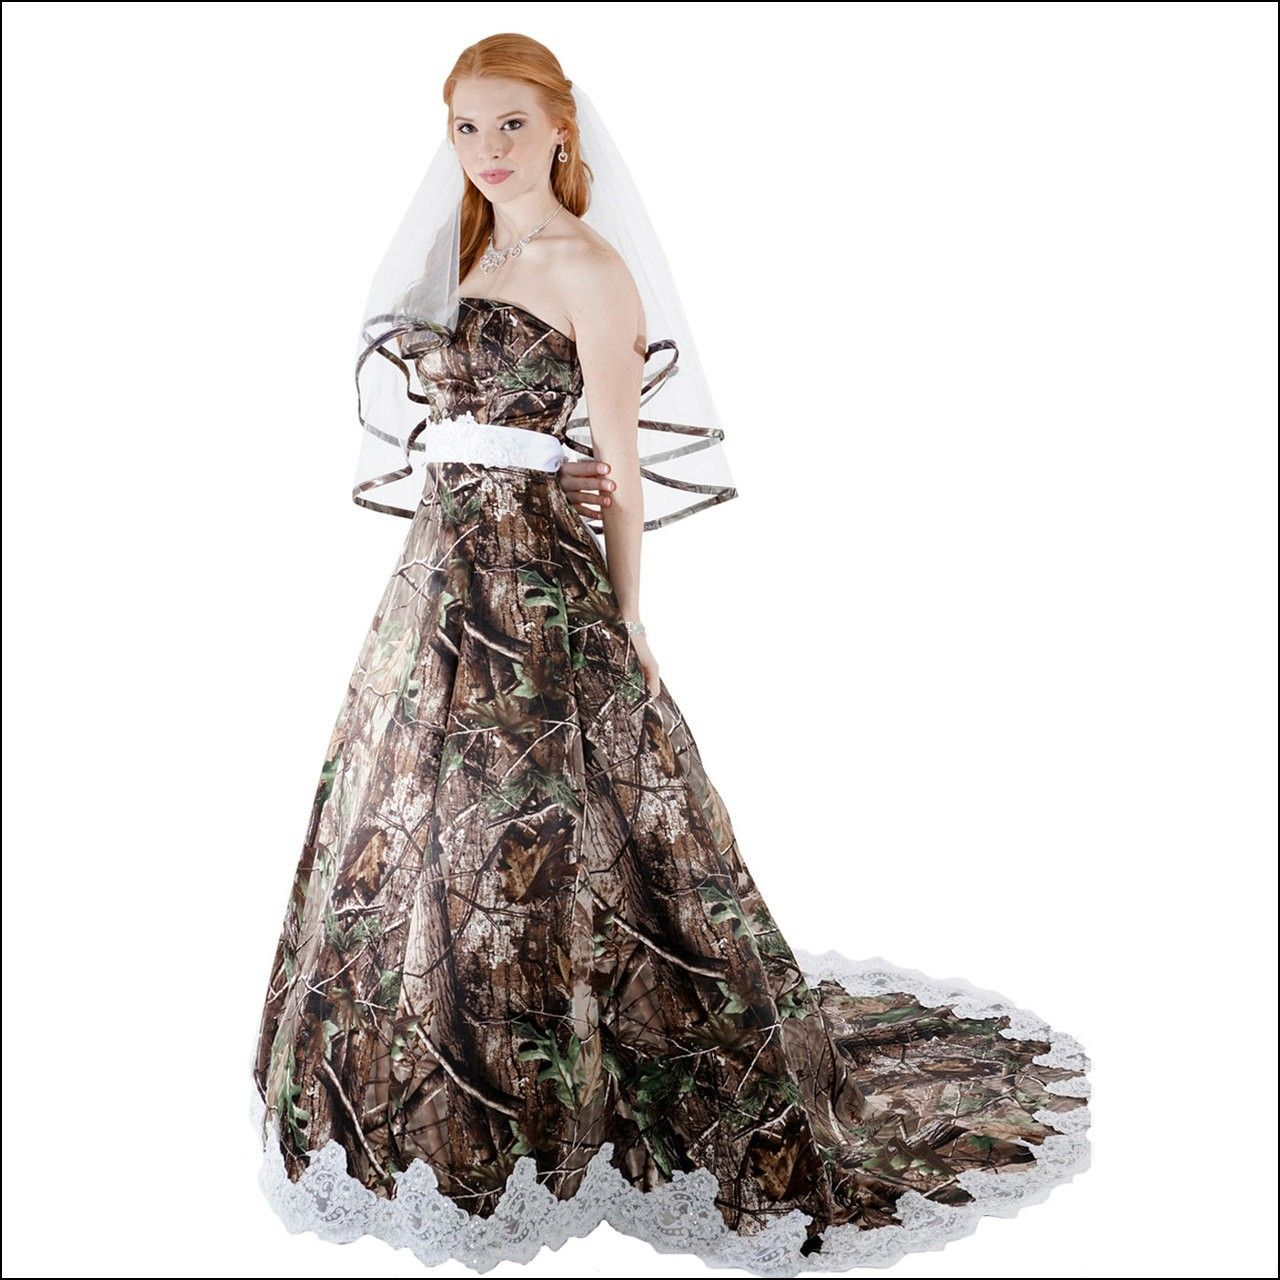 Wedding dresses camo  Camouflage Wedding Gown  Dresses and Gowns Ideas  Pinterest